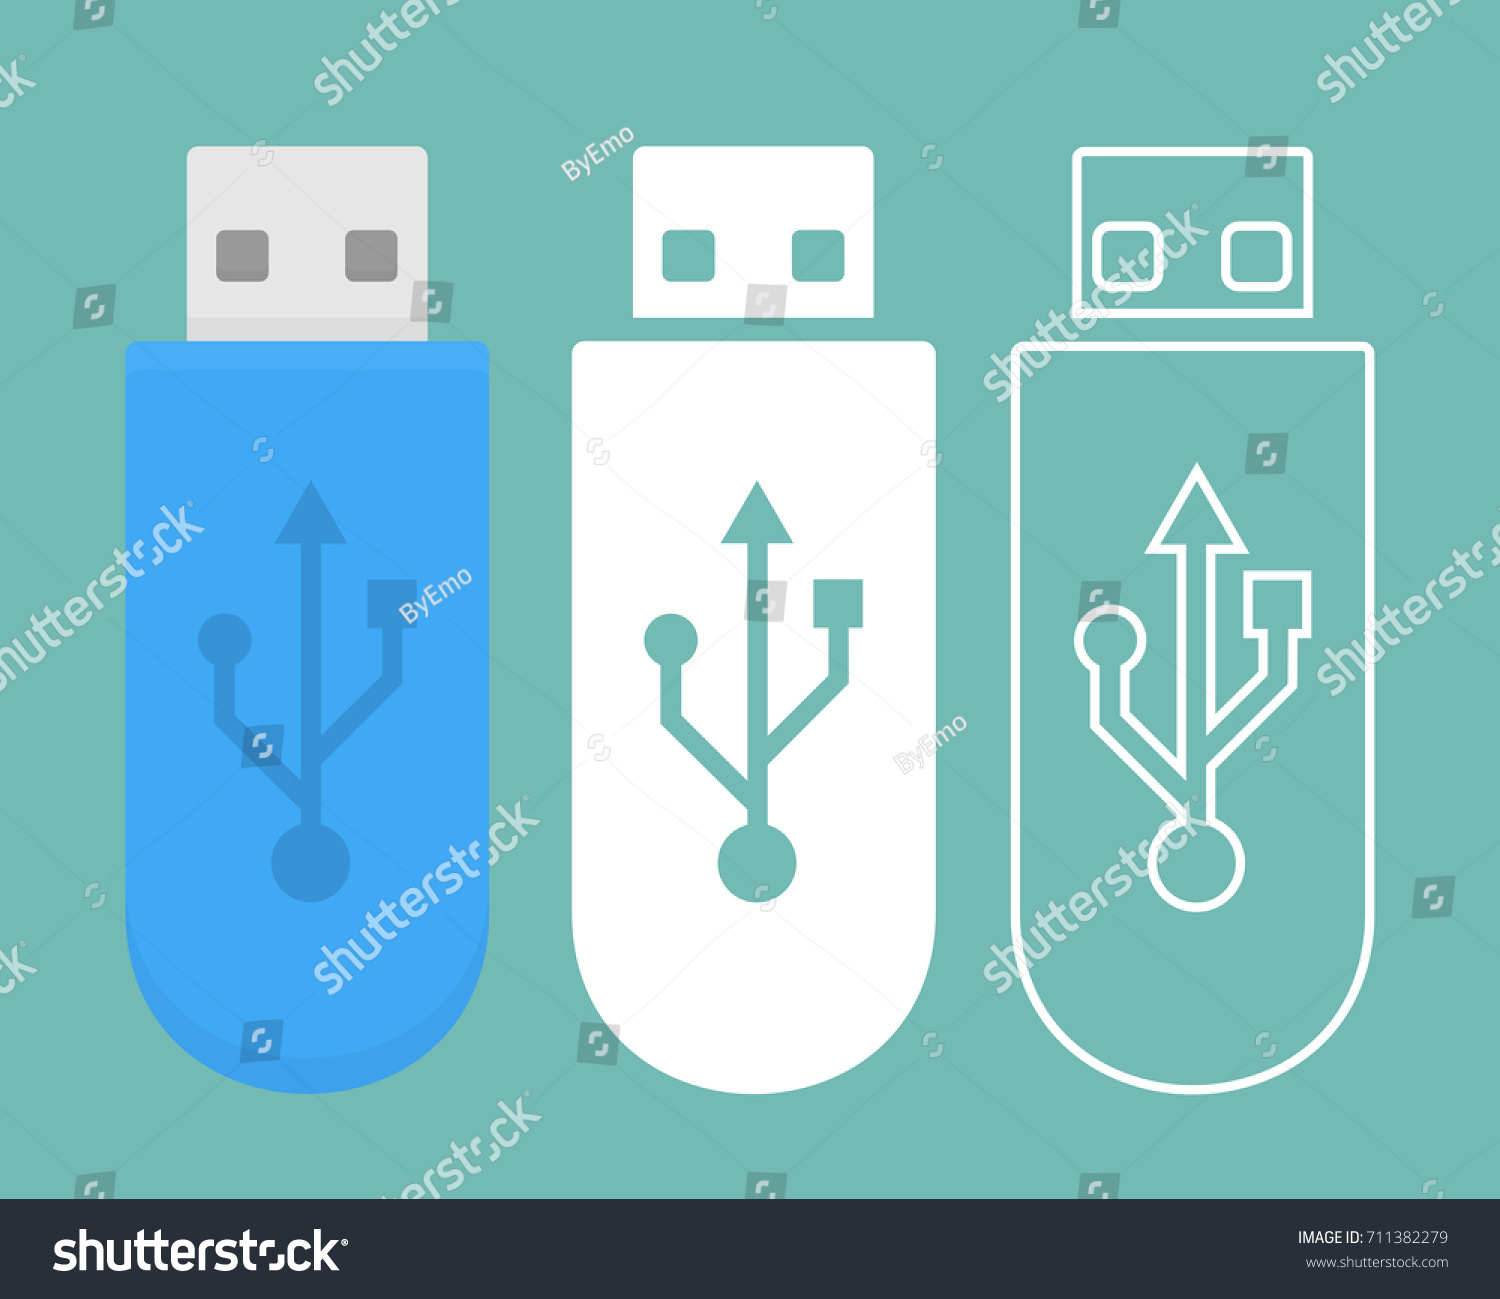 Usb stick icon three different style stock vector 711382279 usb stick icon in three different style biocorpaavc Images